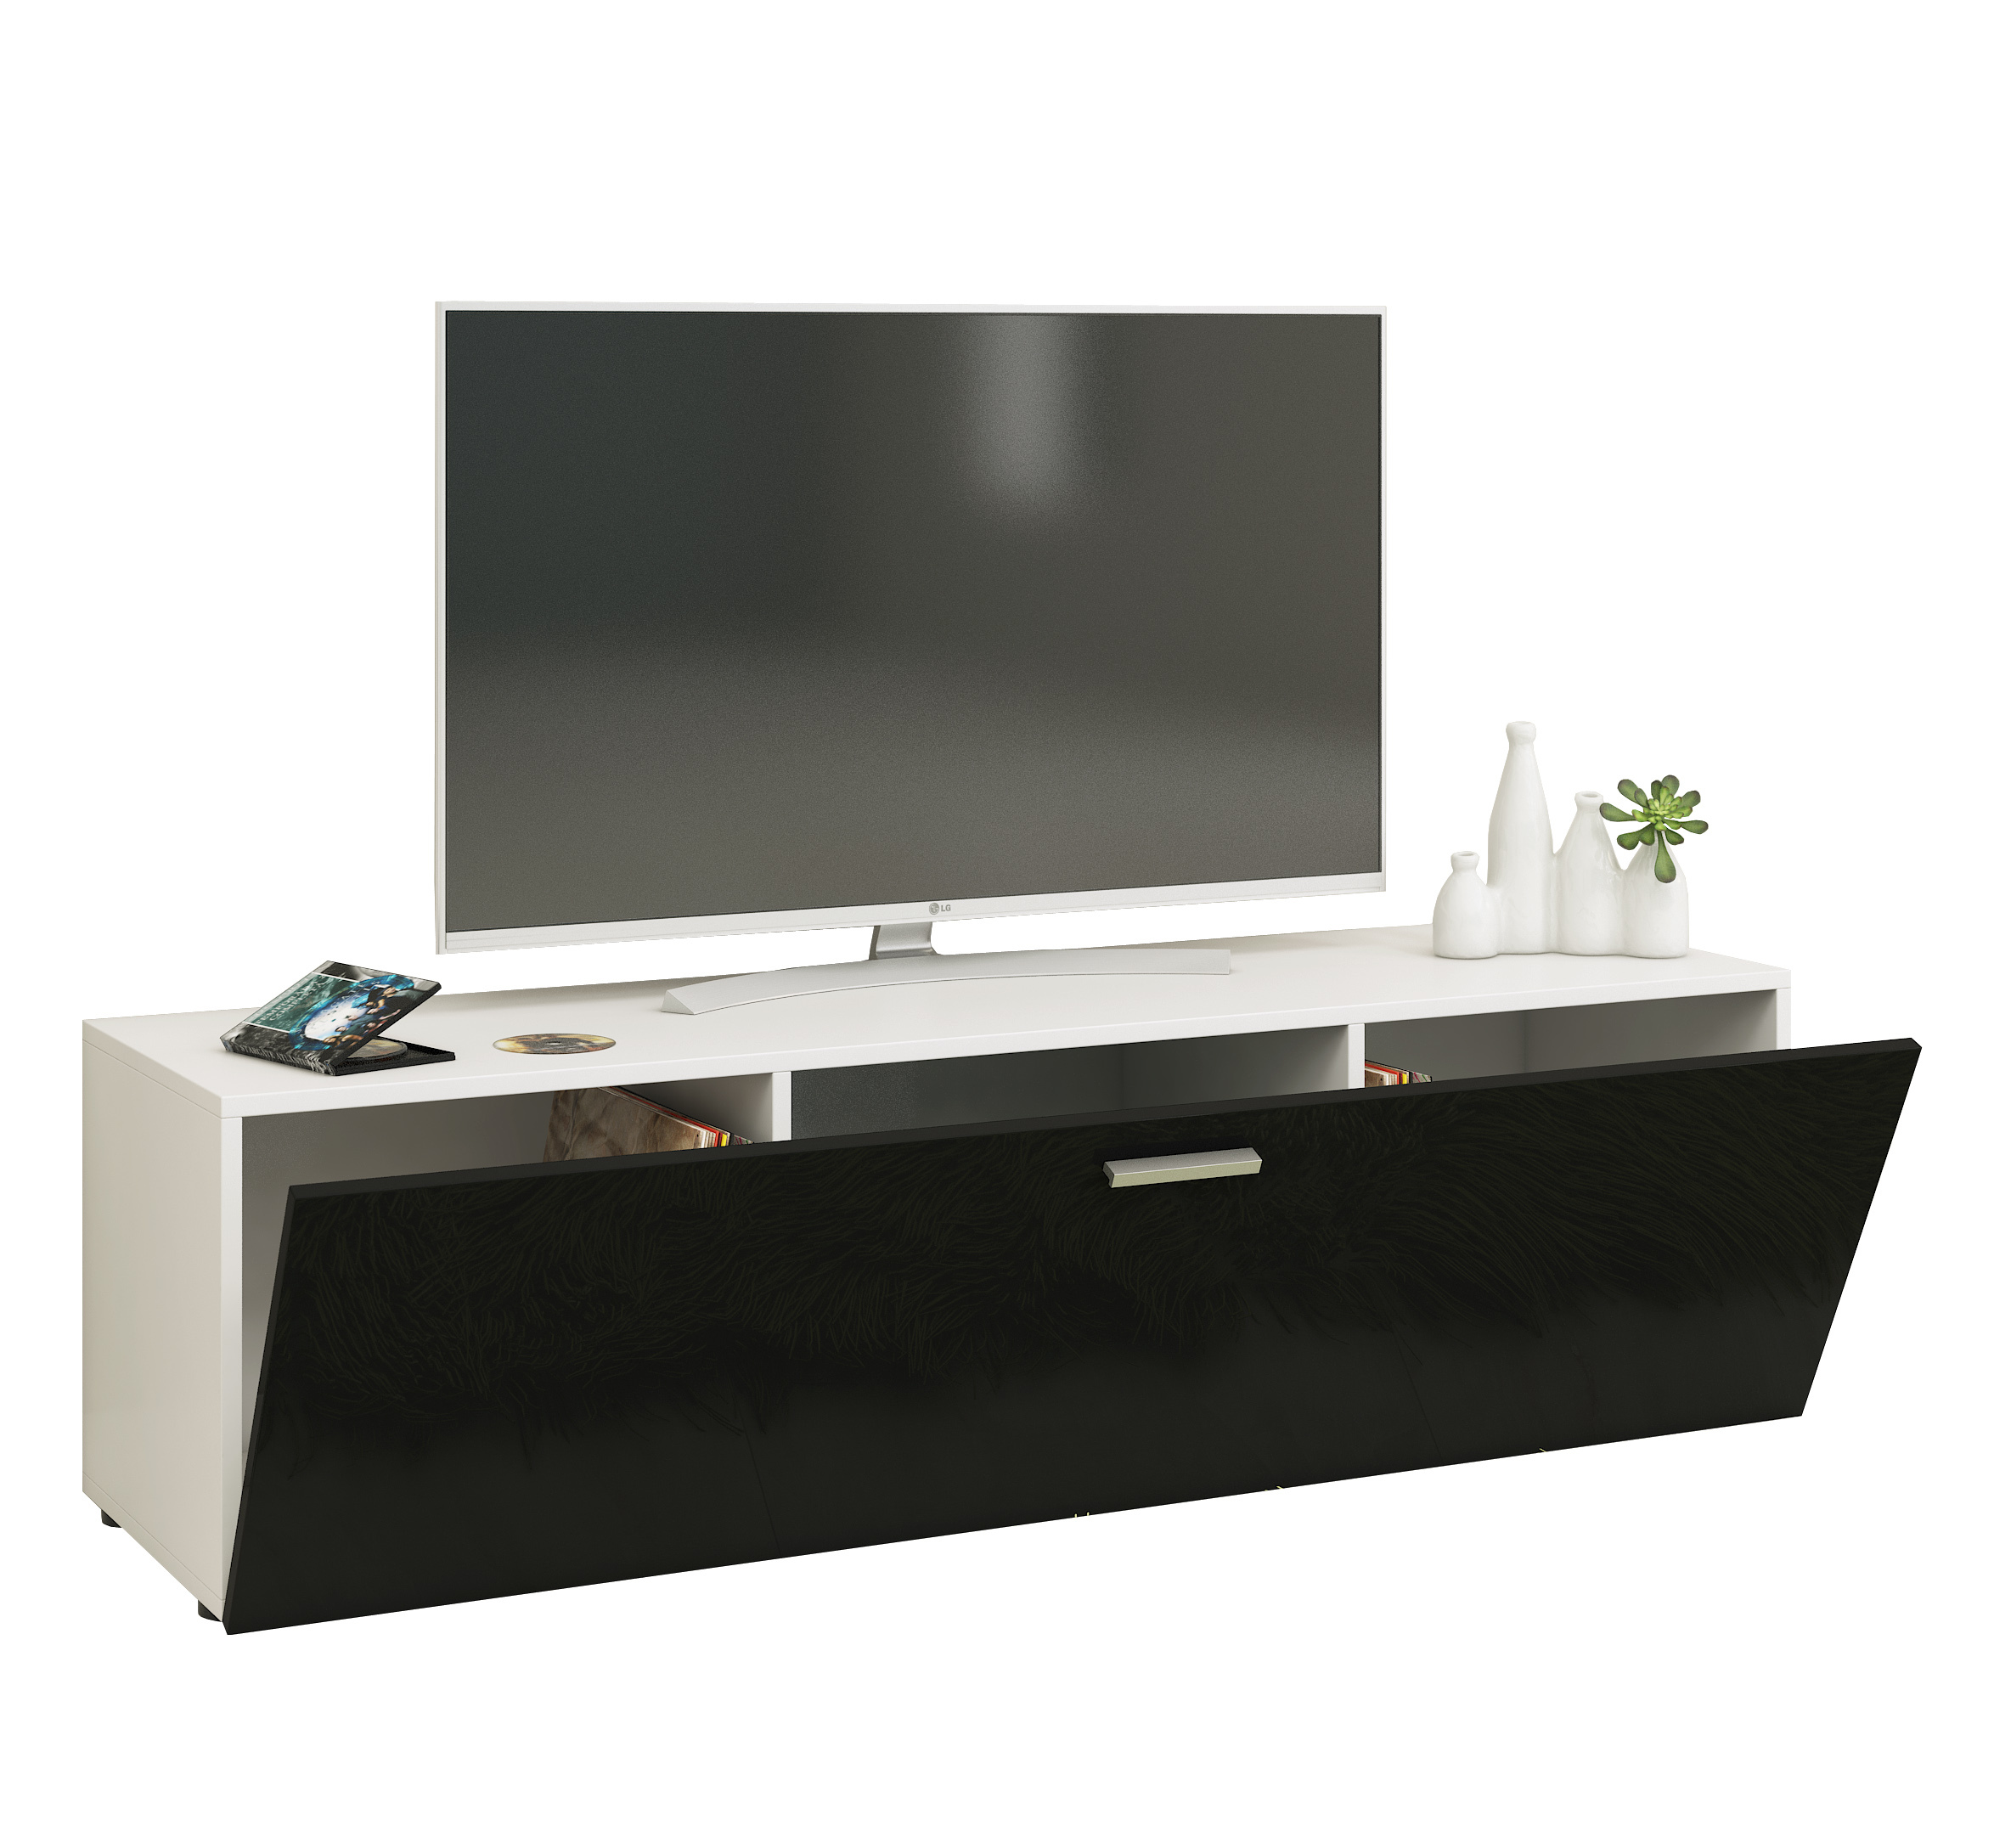 vcm gruppe vcm tv lowboard fernsehtisch rack phono m bel tisch holz sideboard medienrack. Black Bedroom Furniture Sets. Home Design Ideas